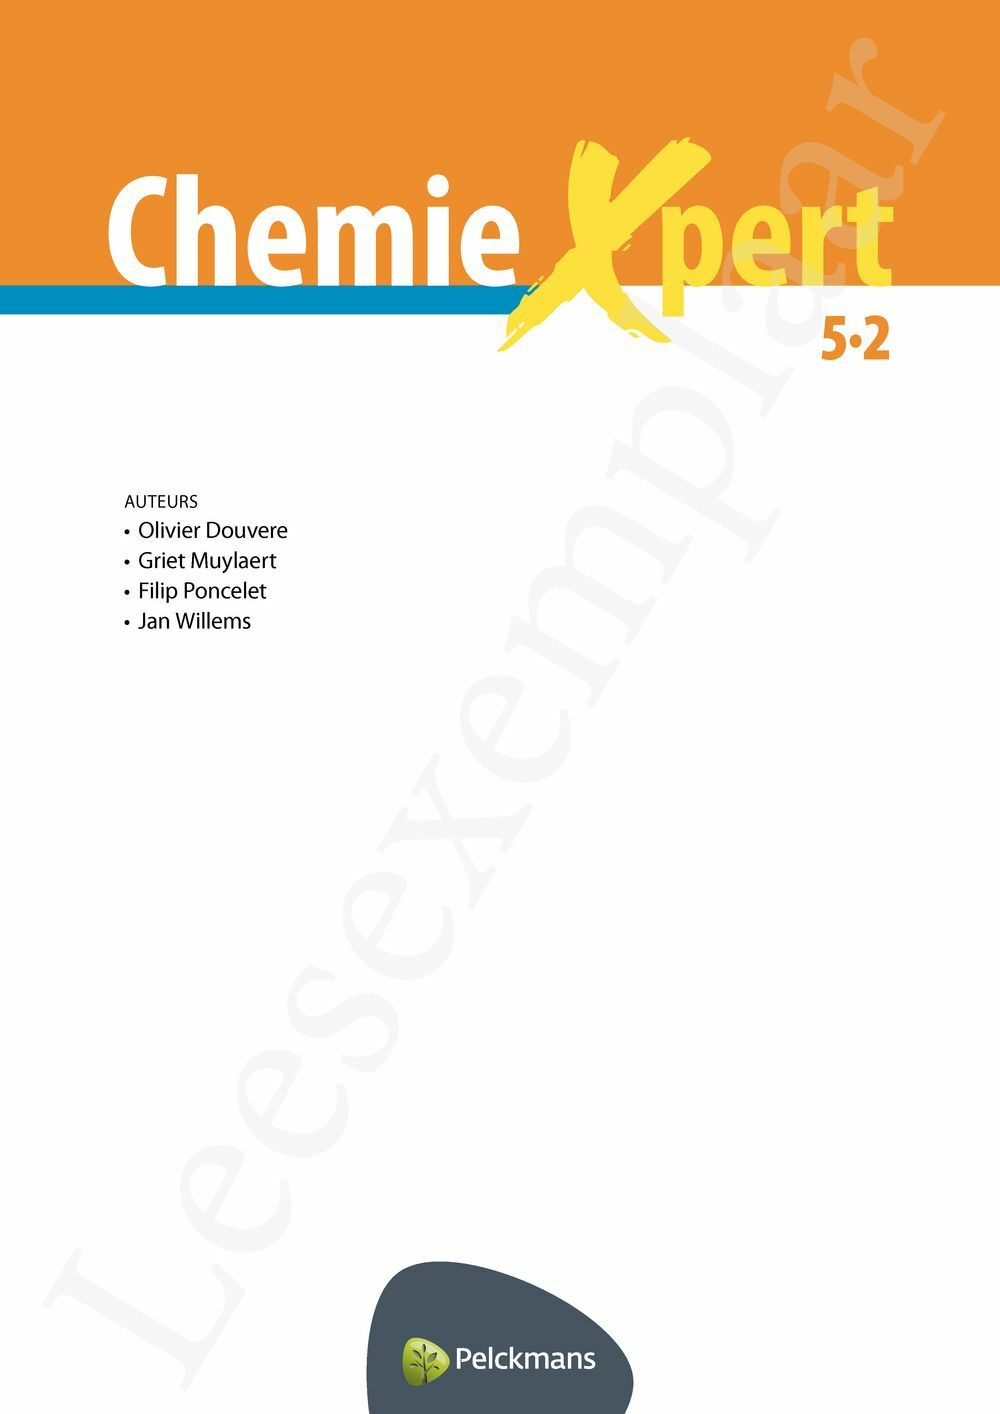 Preview: Chemie Xpert 5.2 (incl. vademecum)